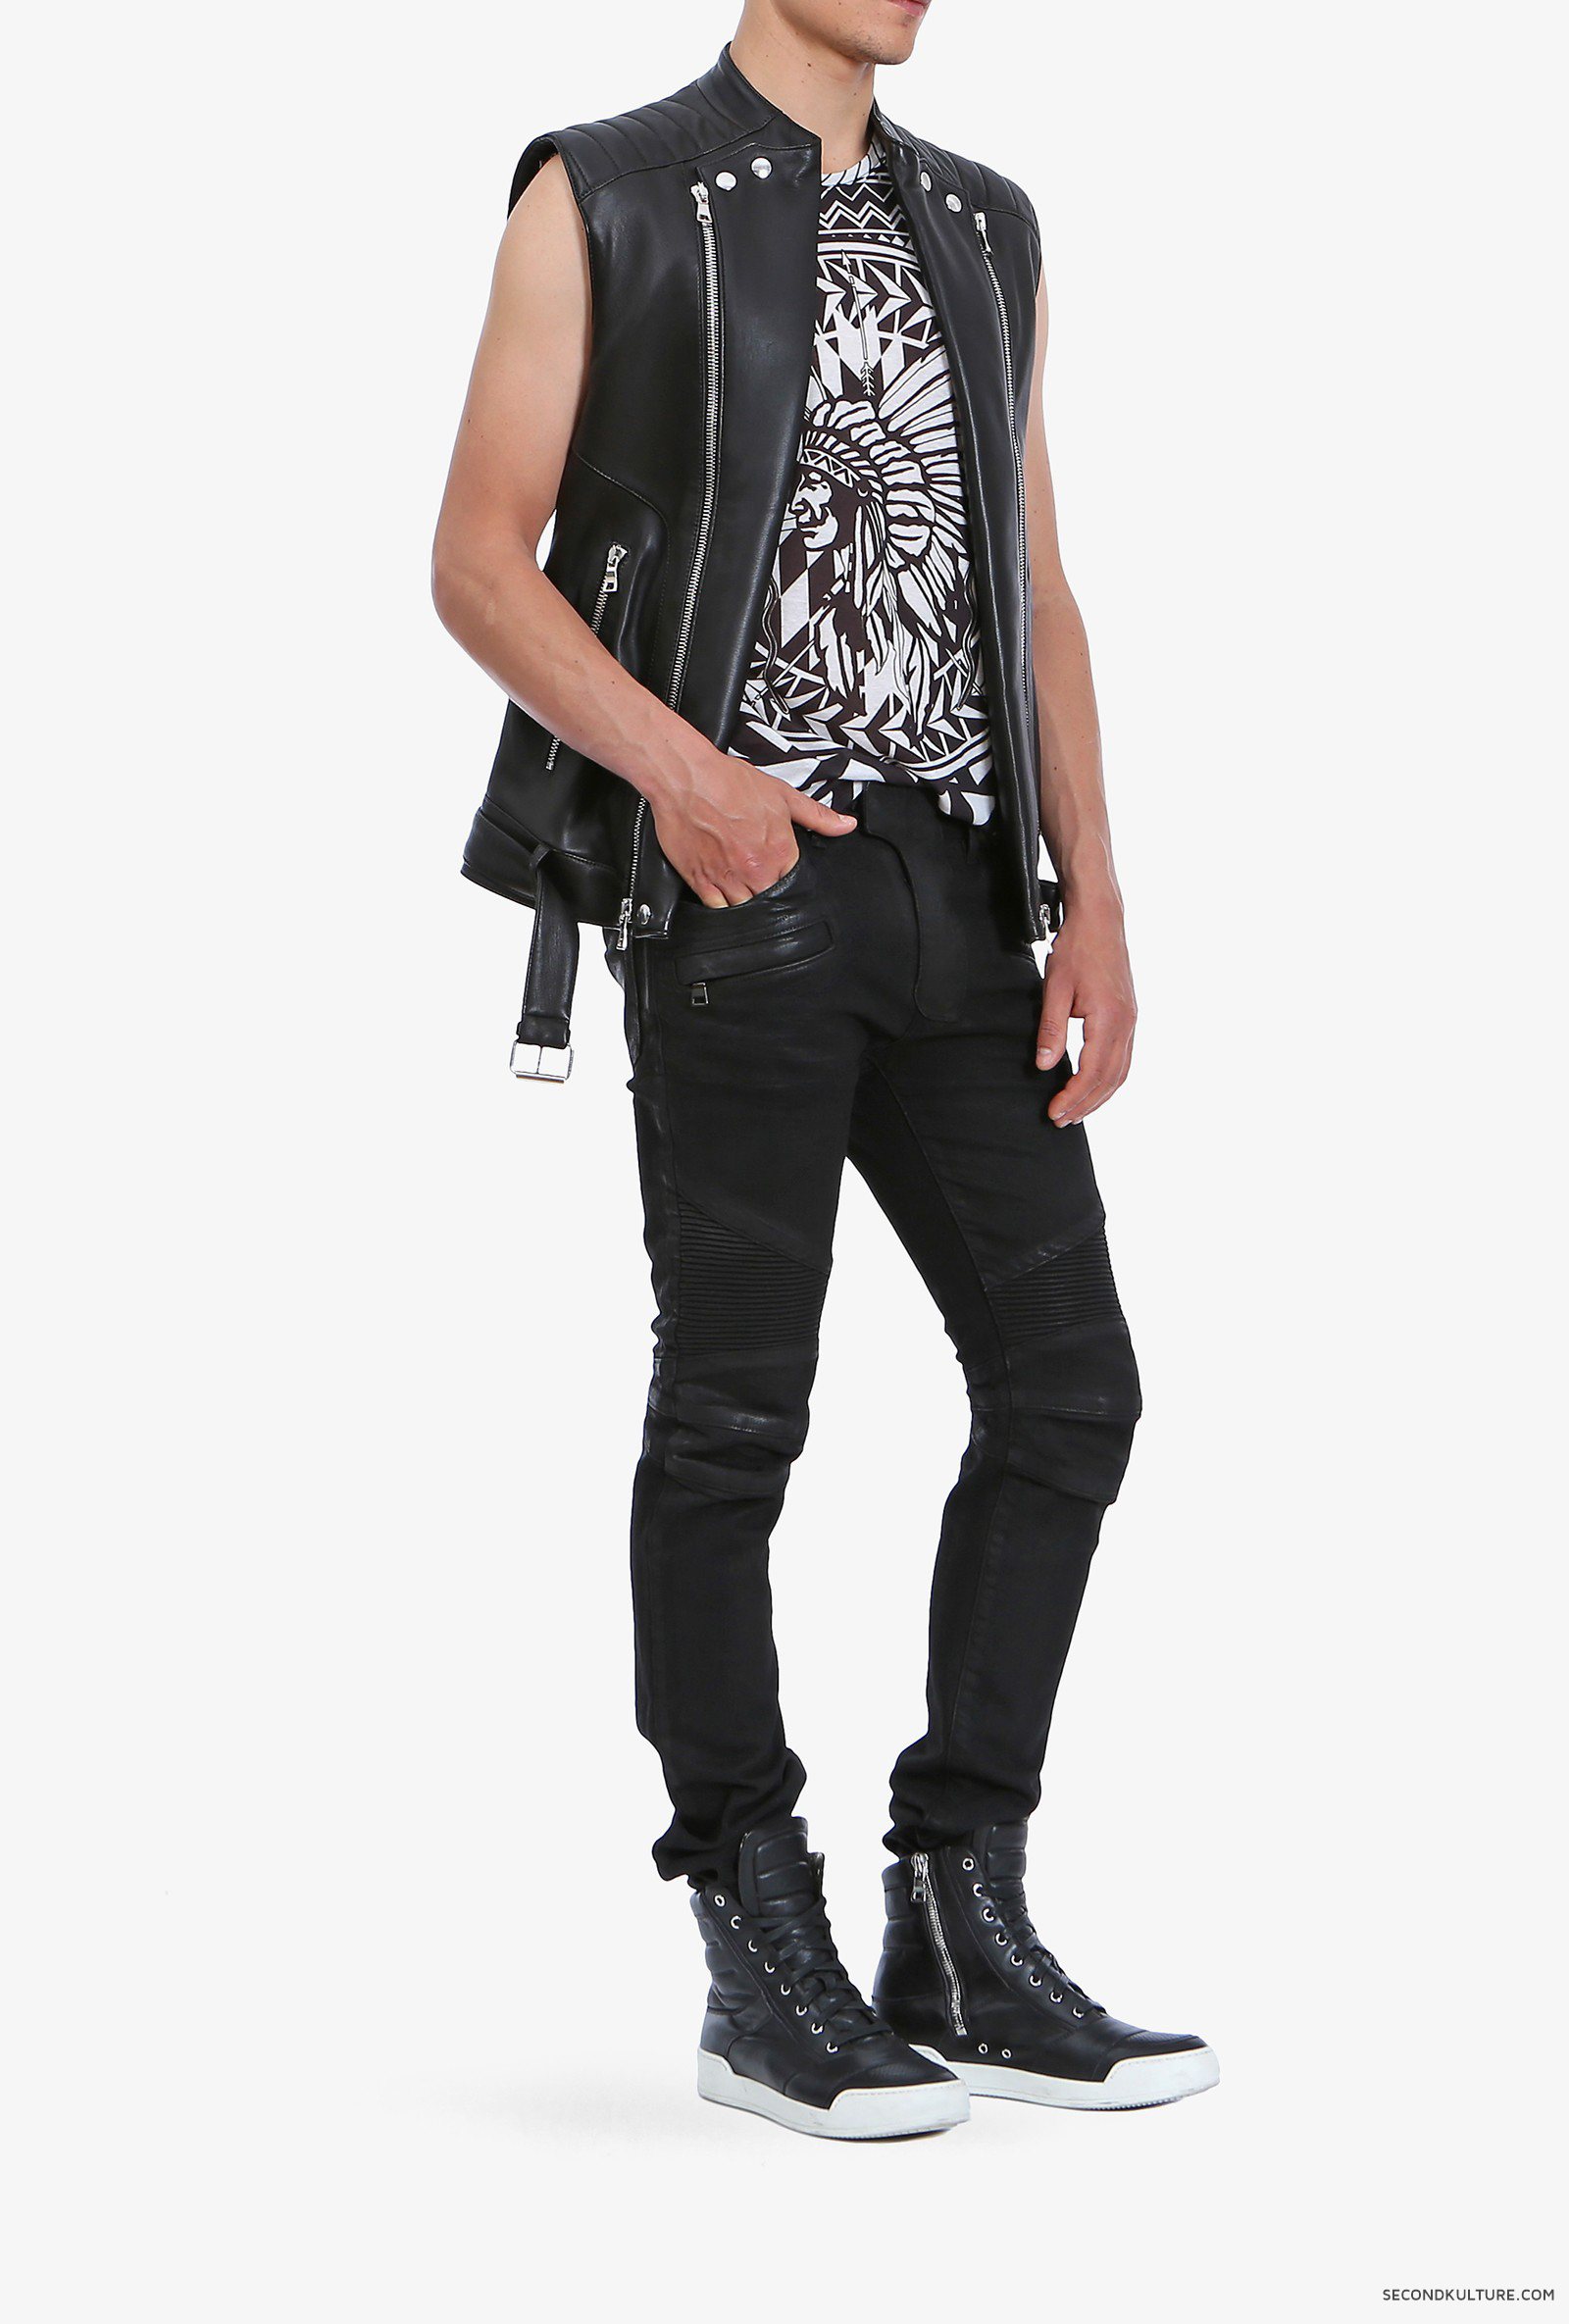 Balmain-Black-Biker-Leather-Zipped-Sleeveless-Jacket-S5HC851C601-176-2